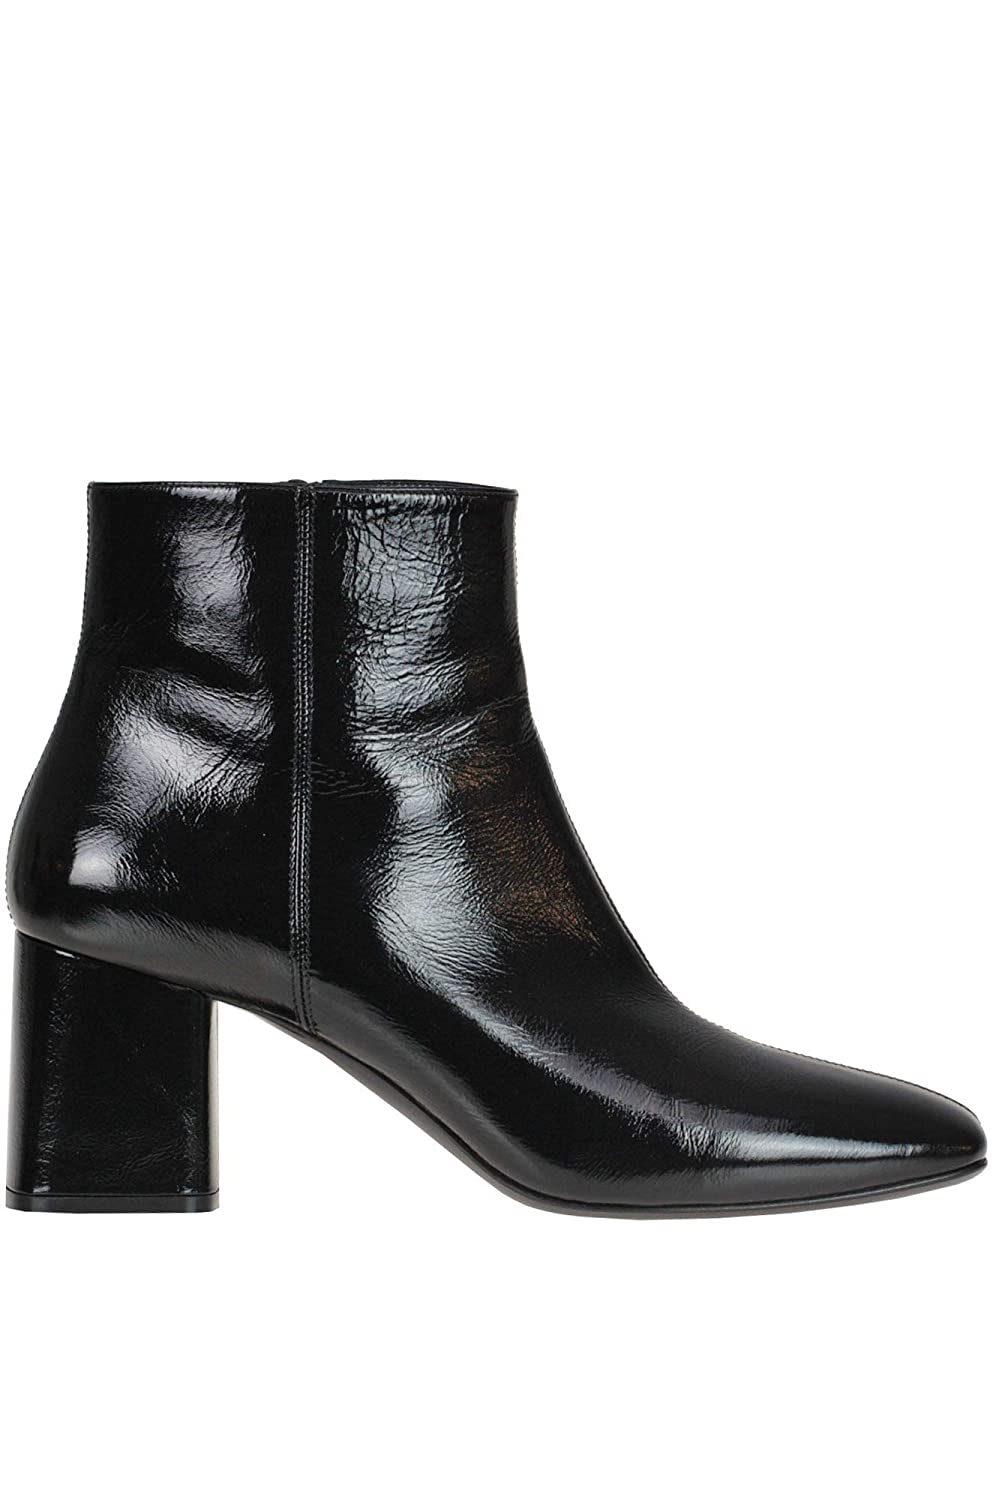 - Casadei Women's MCGLCAS000006037I Black Leather Ankle Boots